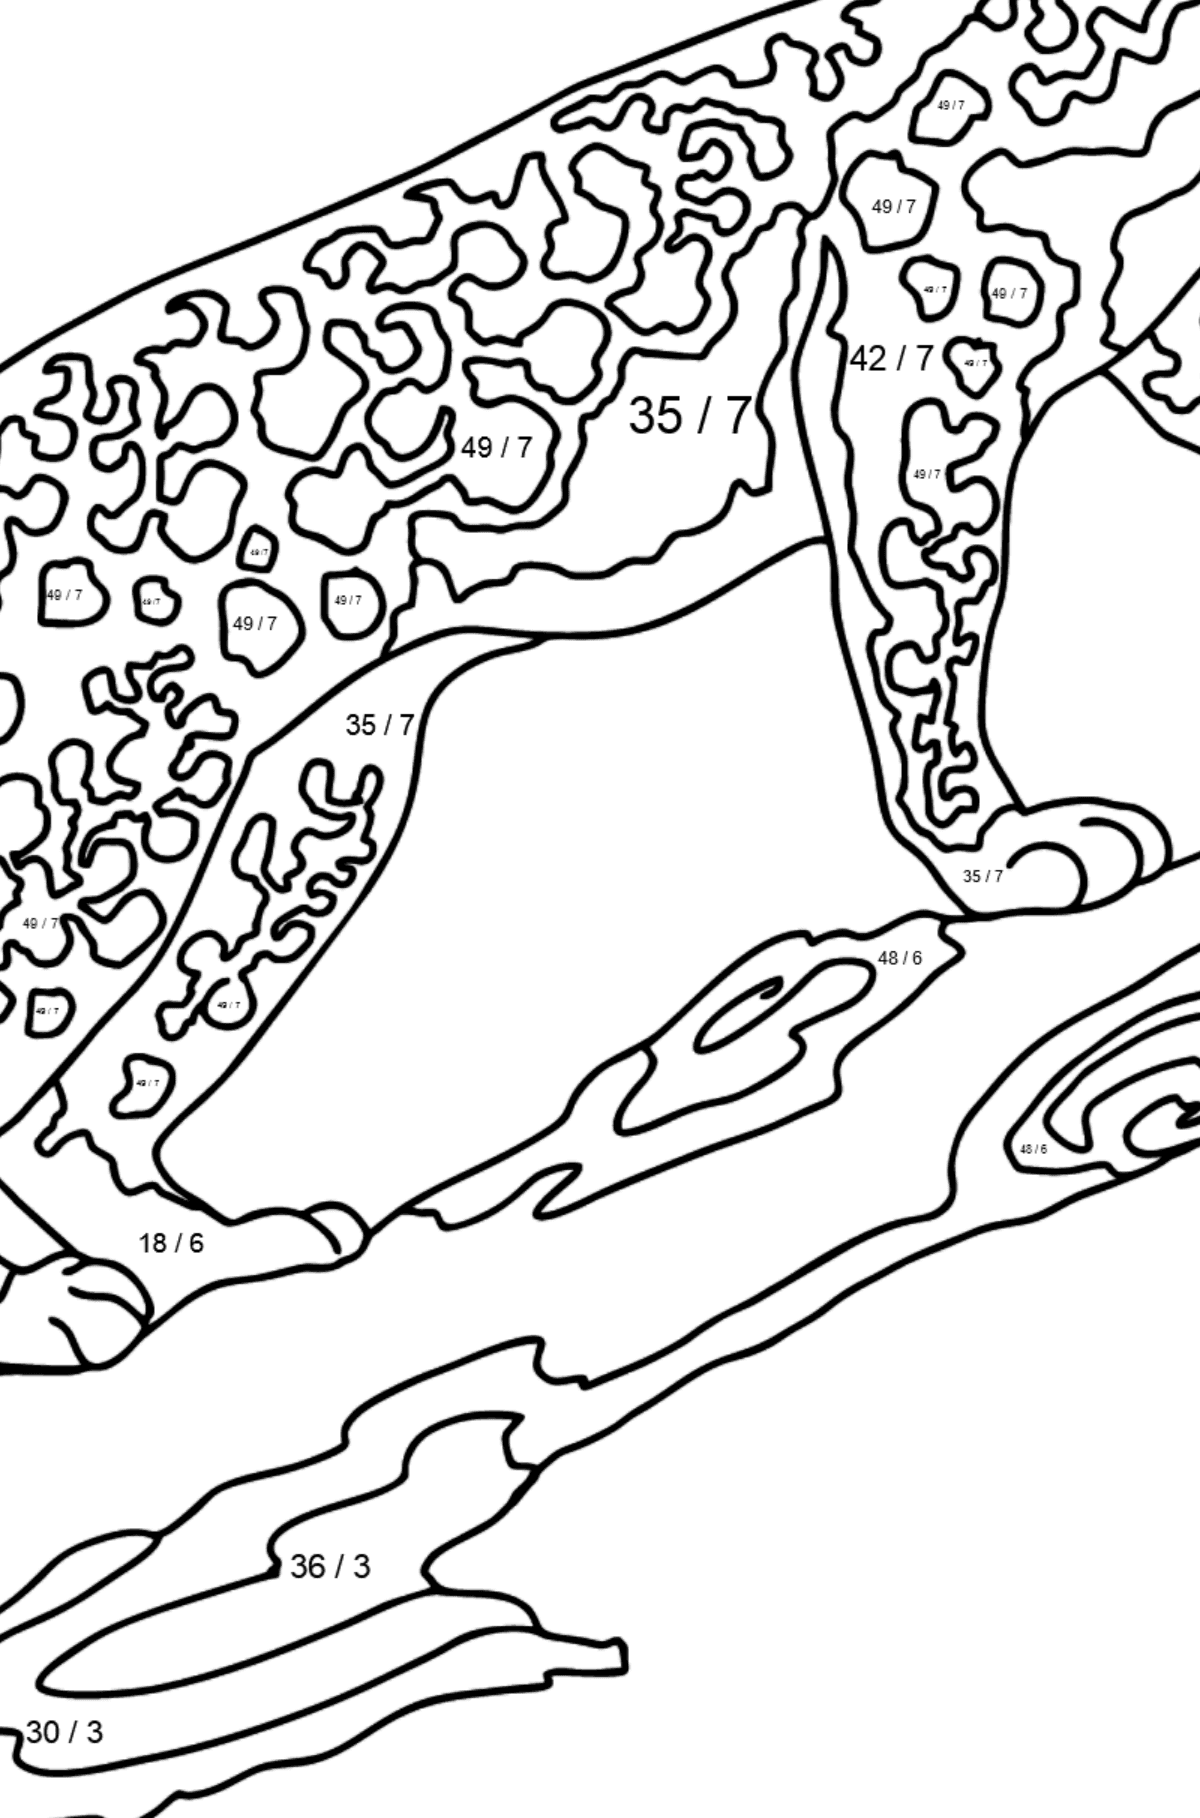 Coloring Page - A Leopard is on a Hunt - Math Coloring - Division for Kids